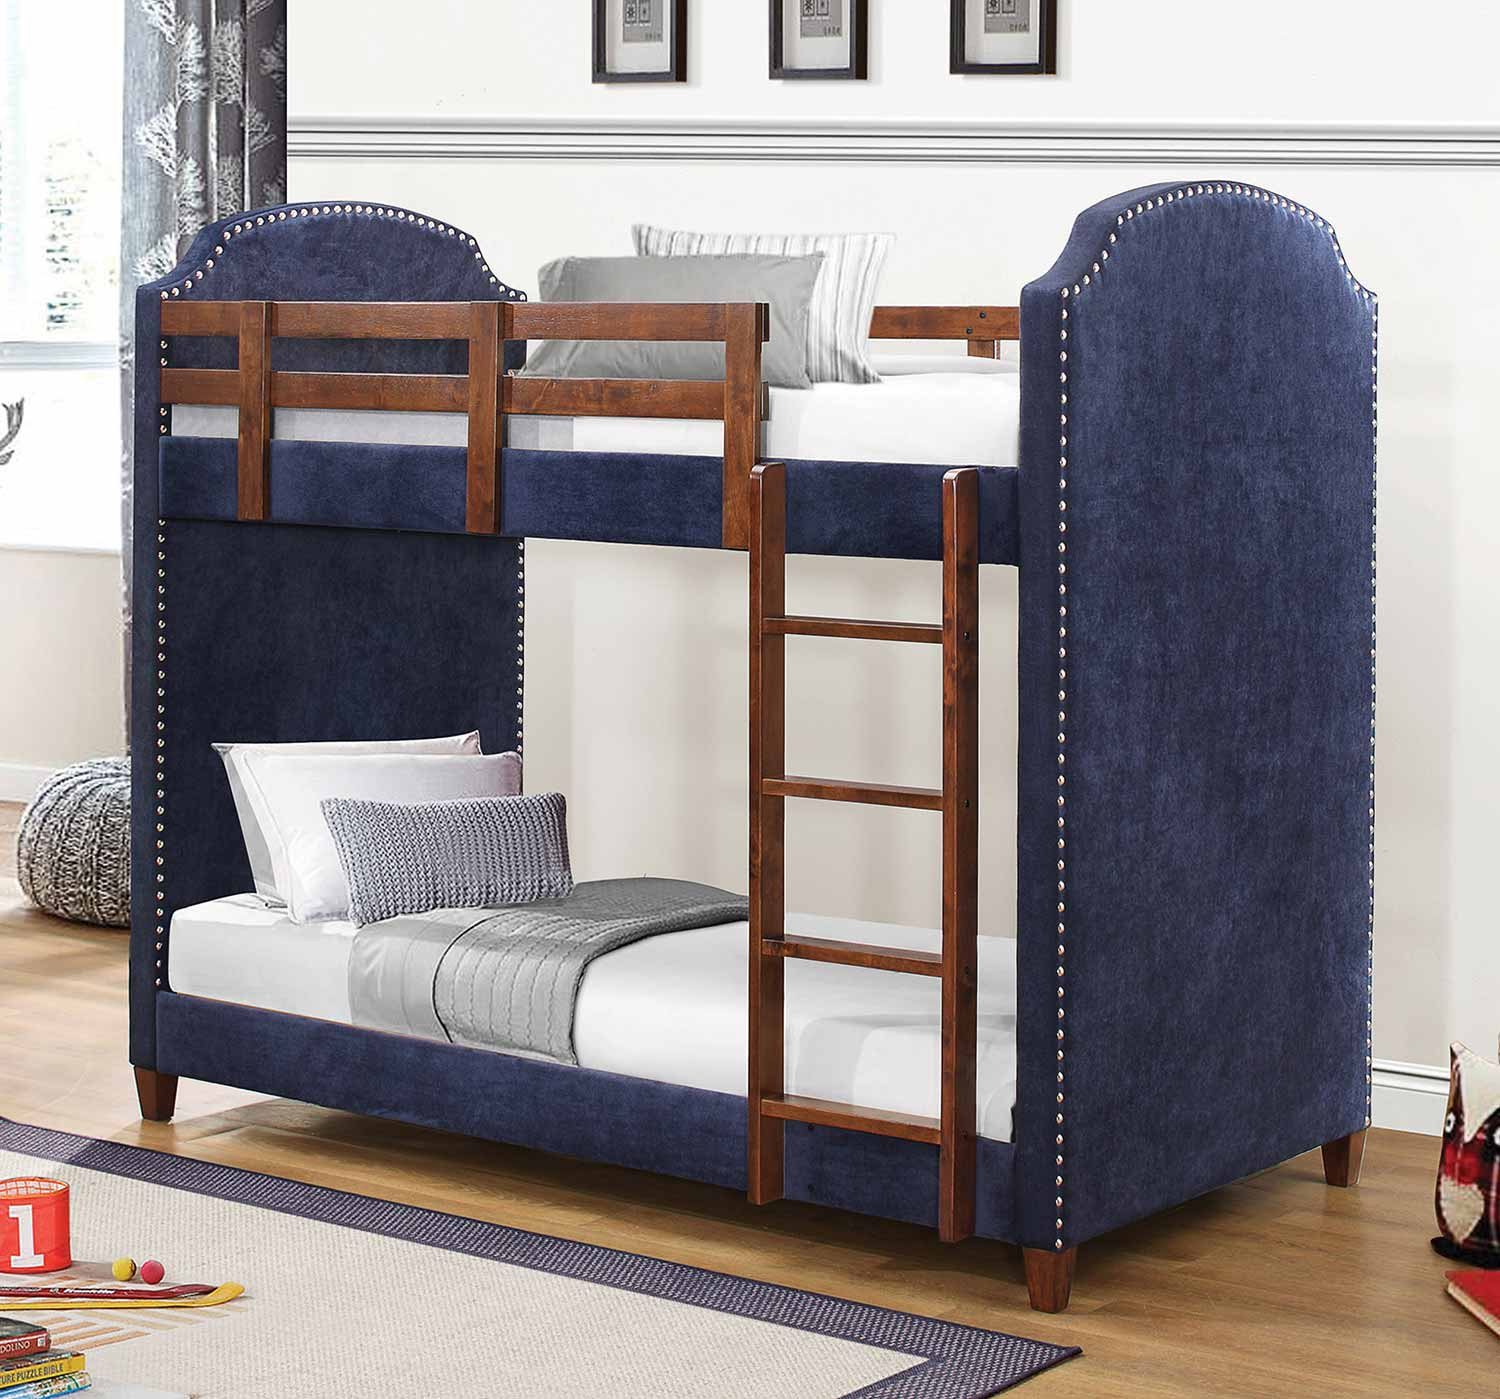 Coaster Charlene Twin/Twin Size Bunk Bed - Navy Blue Fabric